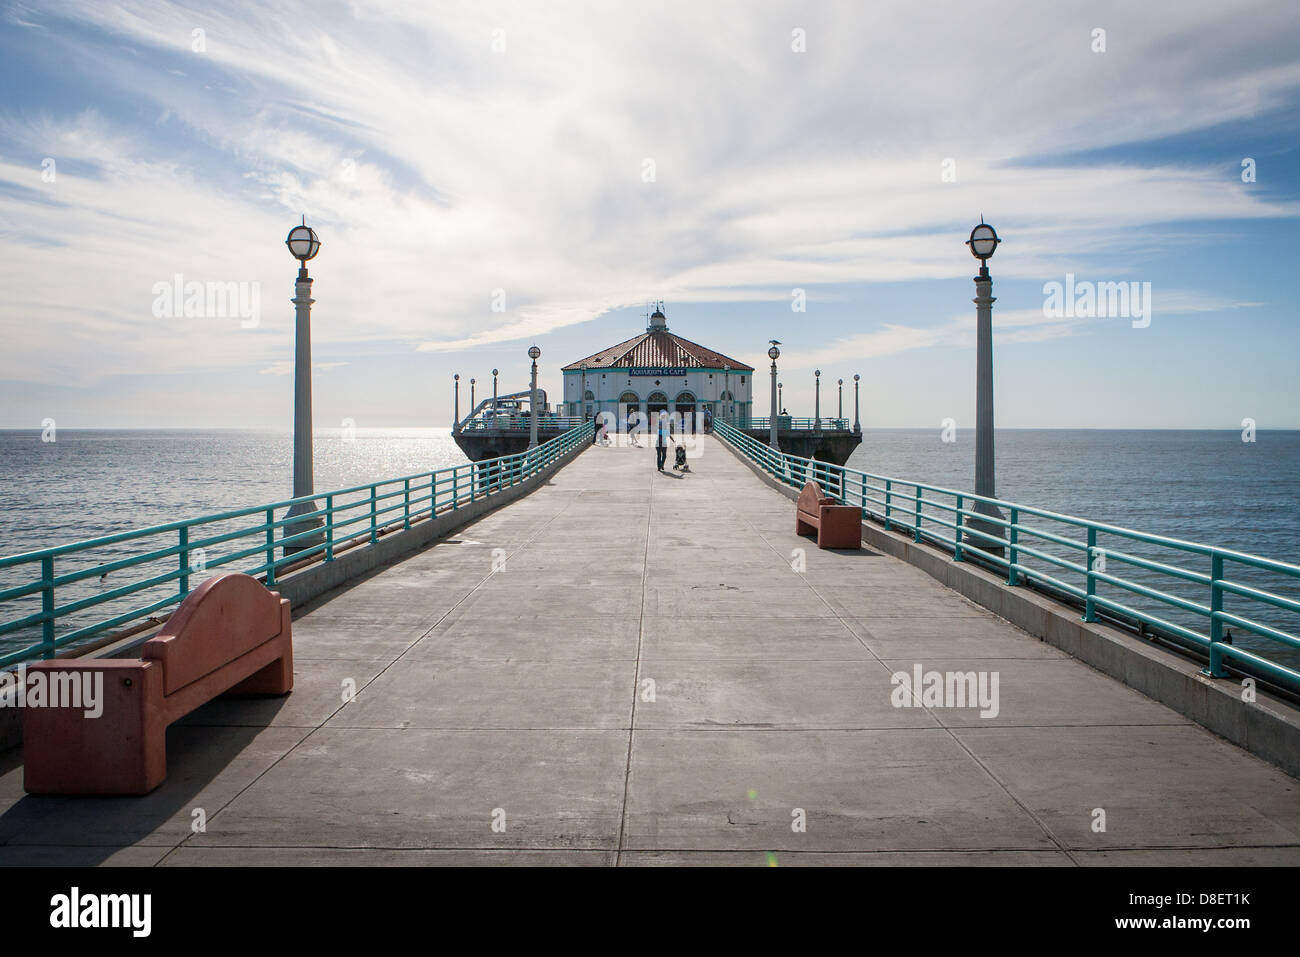 Manhattan Beach pier on a warm sunny day in Los Angeles, California, USA - Stock Image